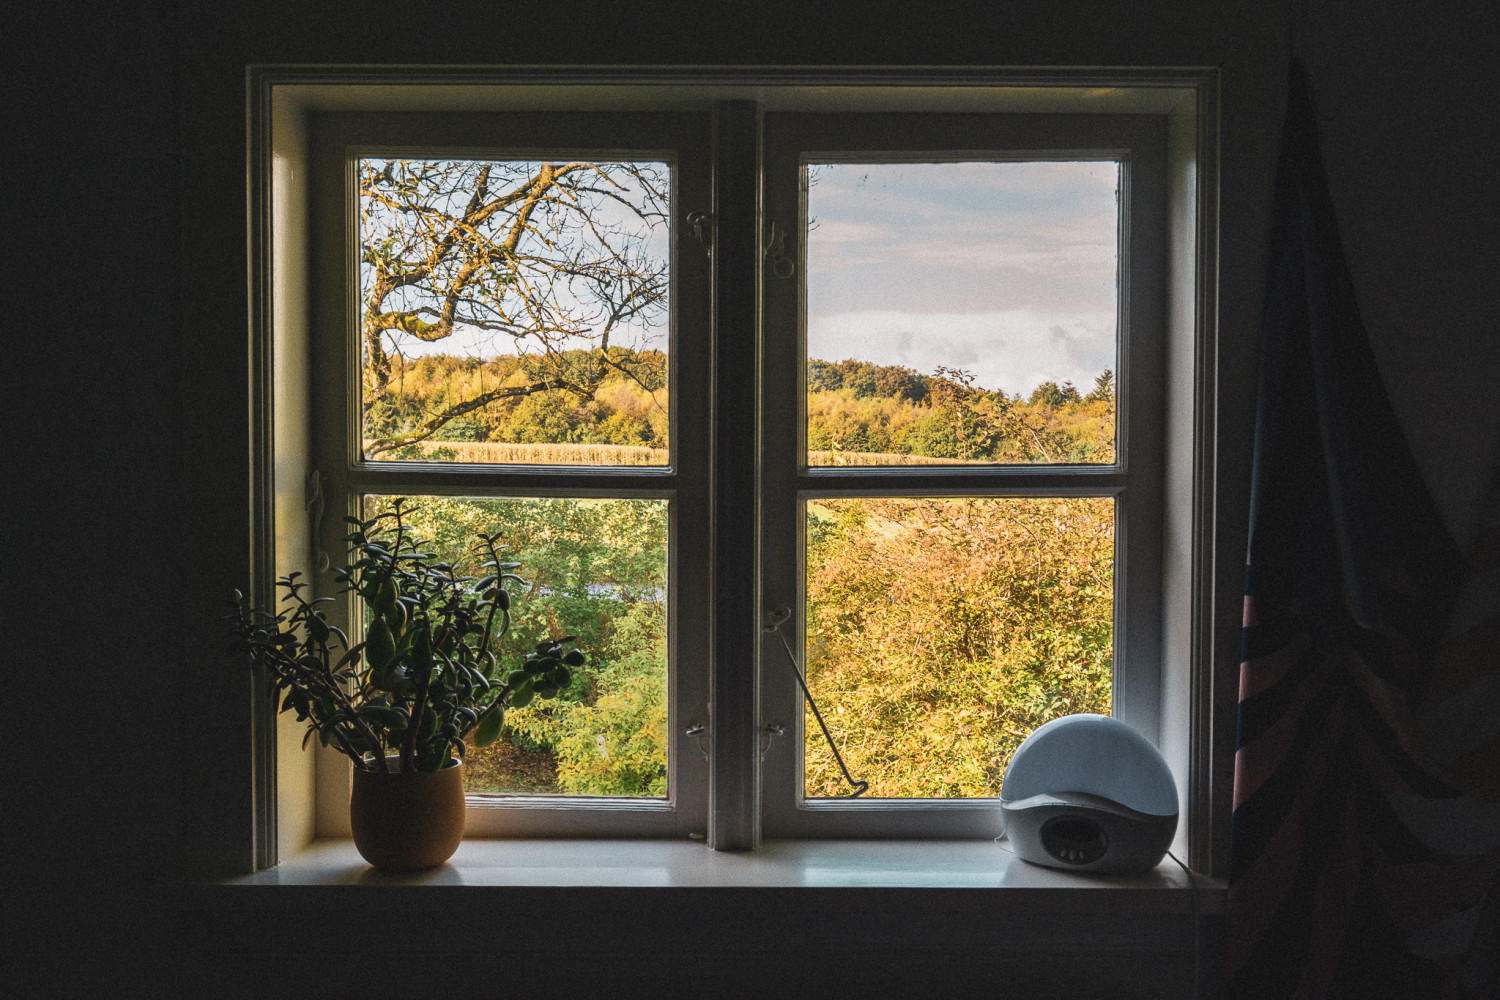 window, view, nature, plant, clock, vindue, udsigt, natur, plante, vækkeur, stories by holst